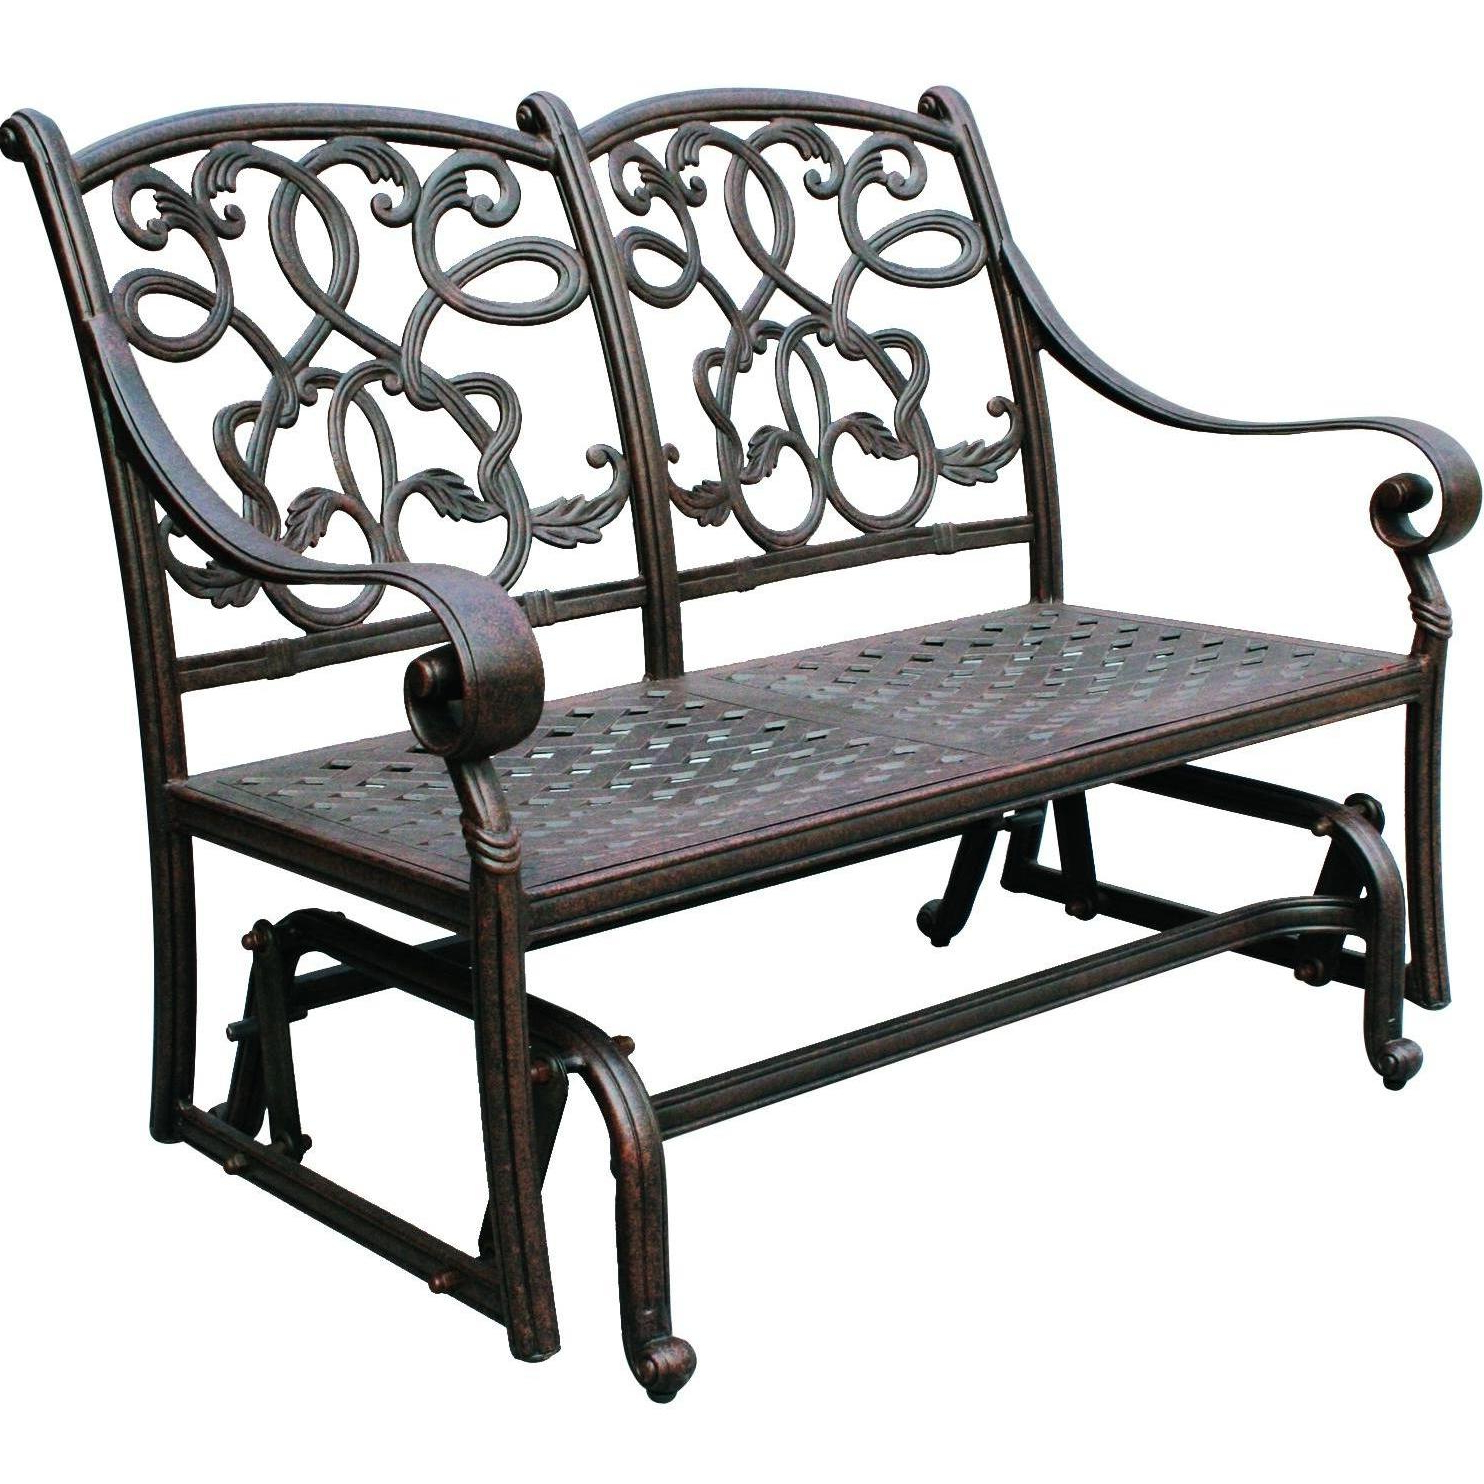 Most Popular Darlee Santa Monica Cast Aluminum Patio Loveseat Glider Inside 2 Person Antique Black Iron Outdoor Gliders (View 6 of 30)